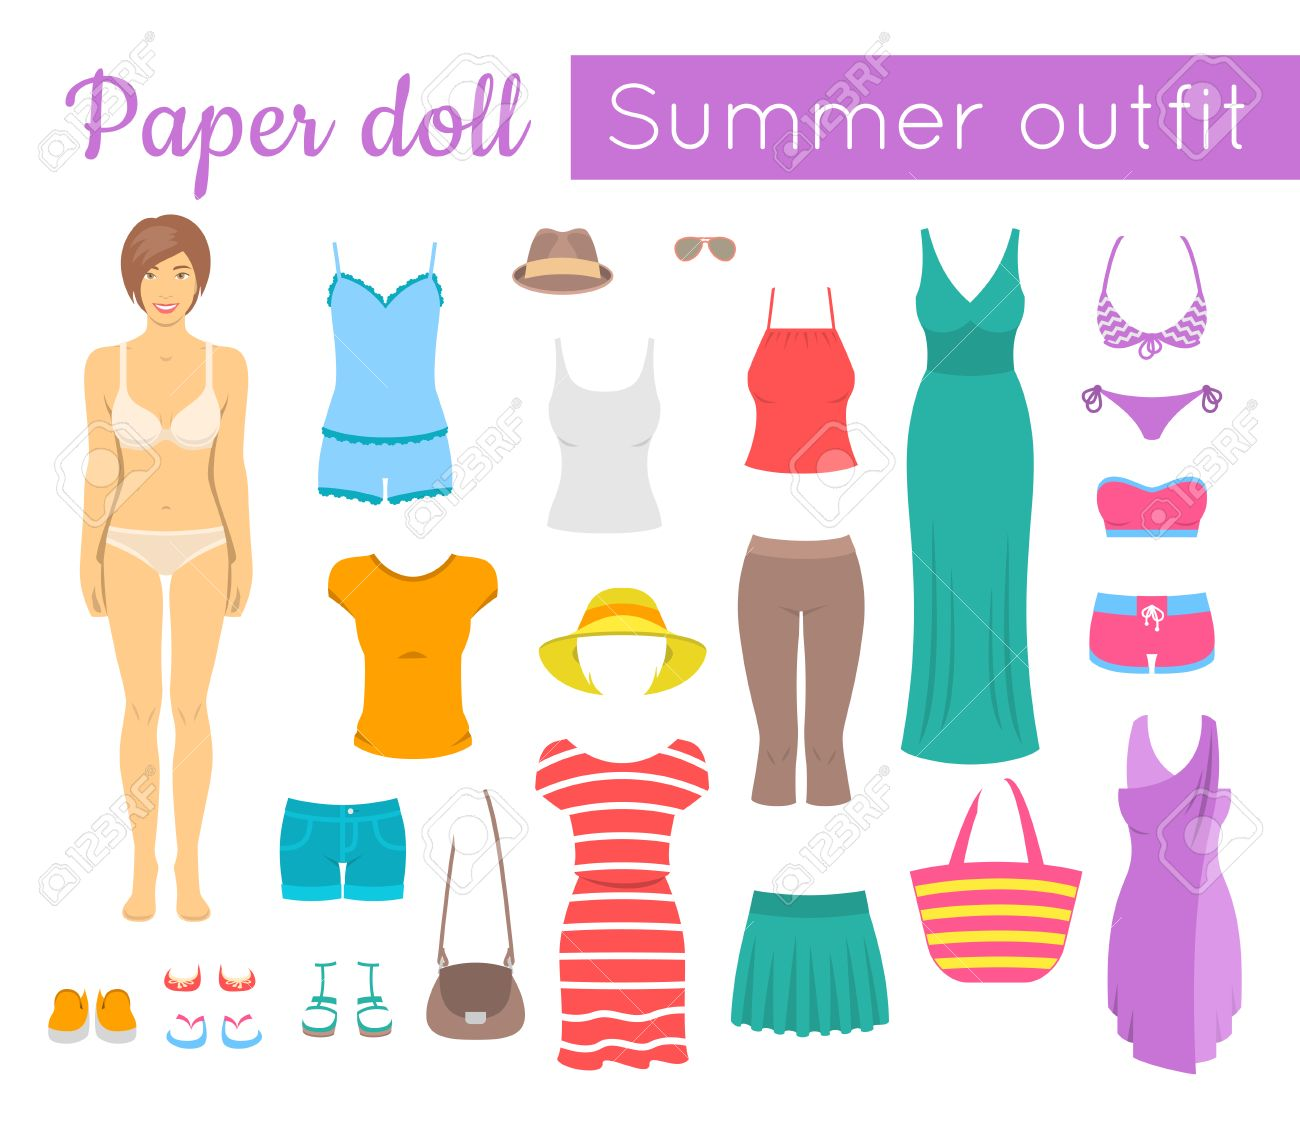 Dress up casual girl games - Dress Up Casual Girl Games Paper Doll Game For Girl Flat Style Illustration Cut Out Download